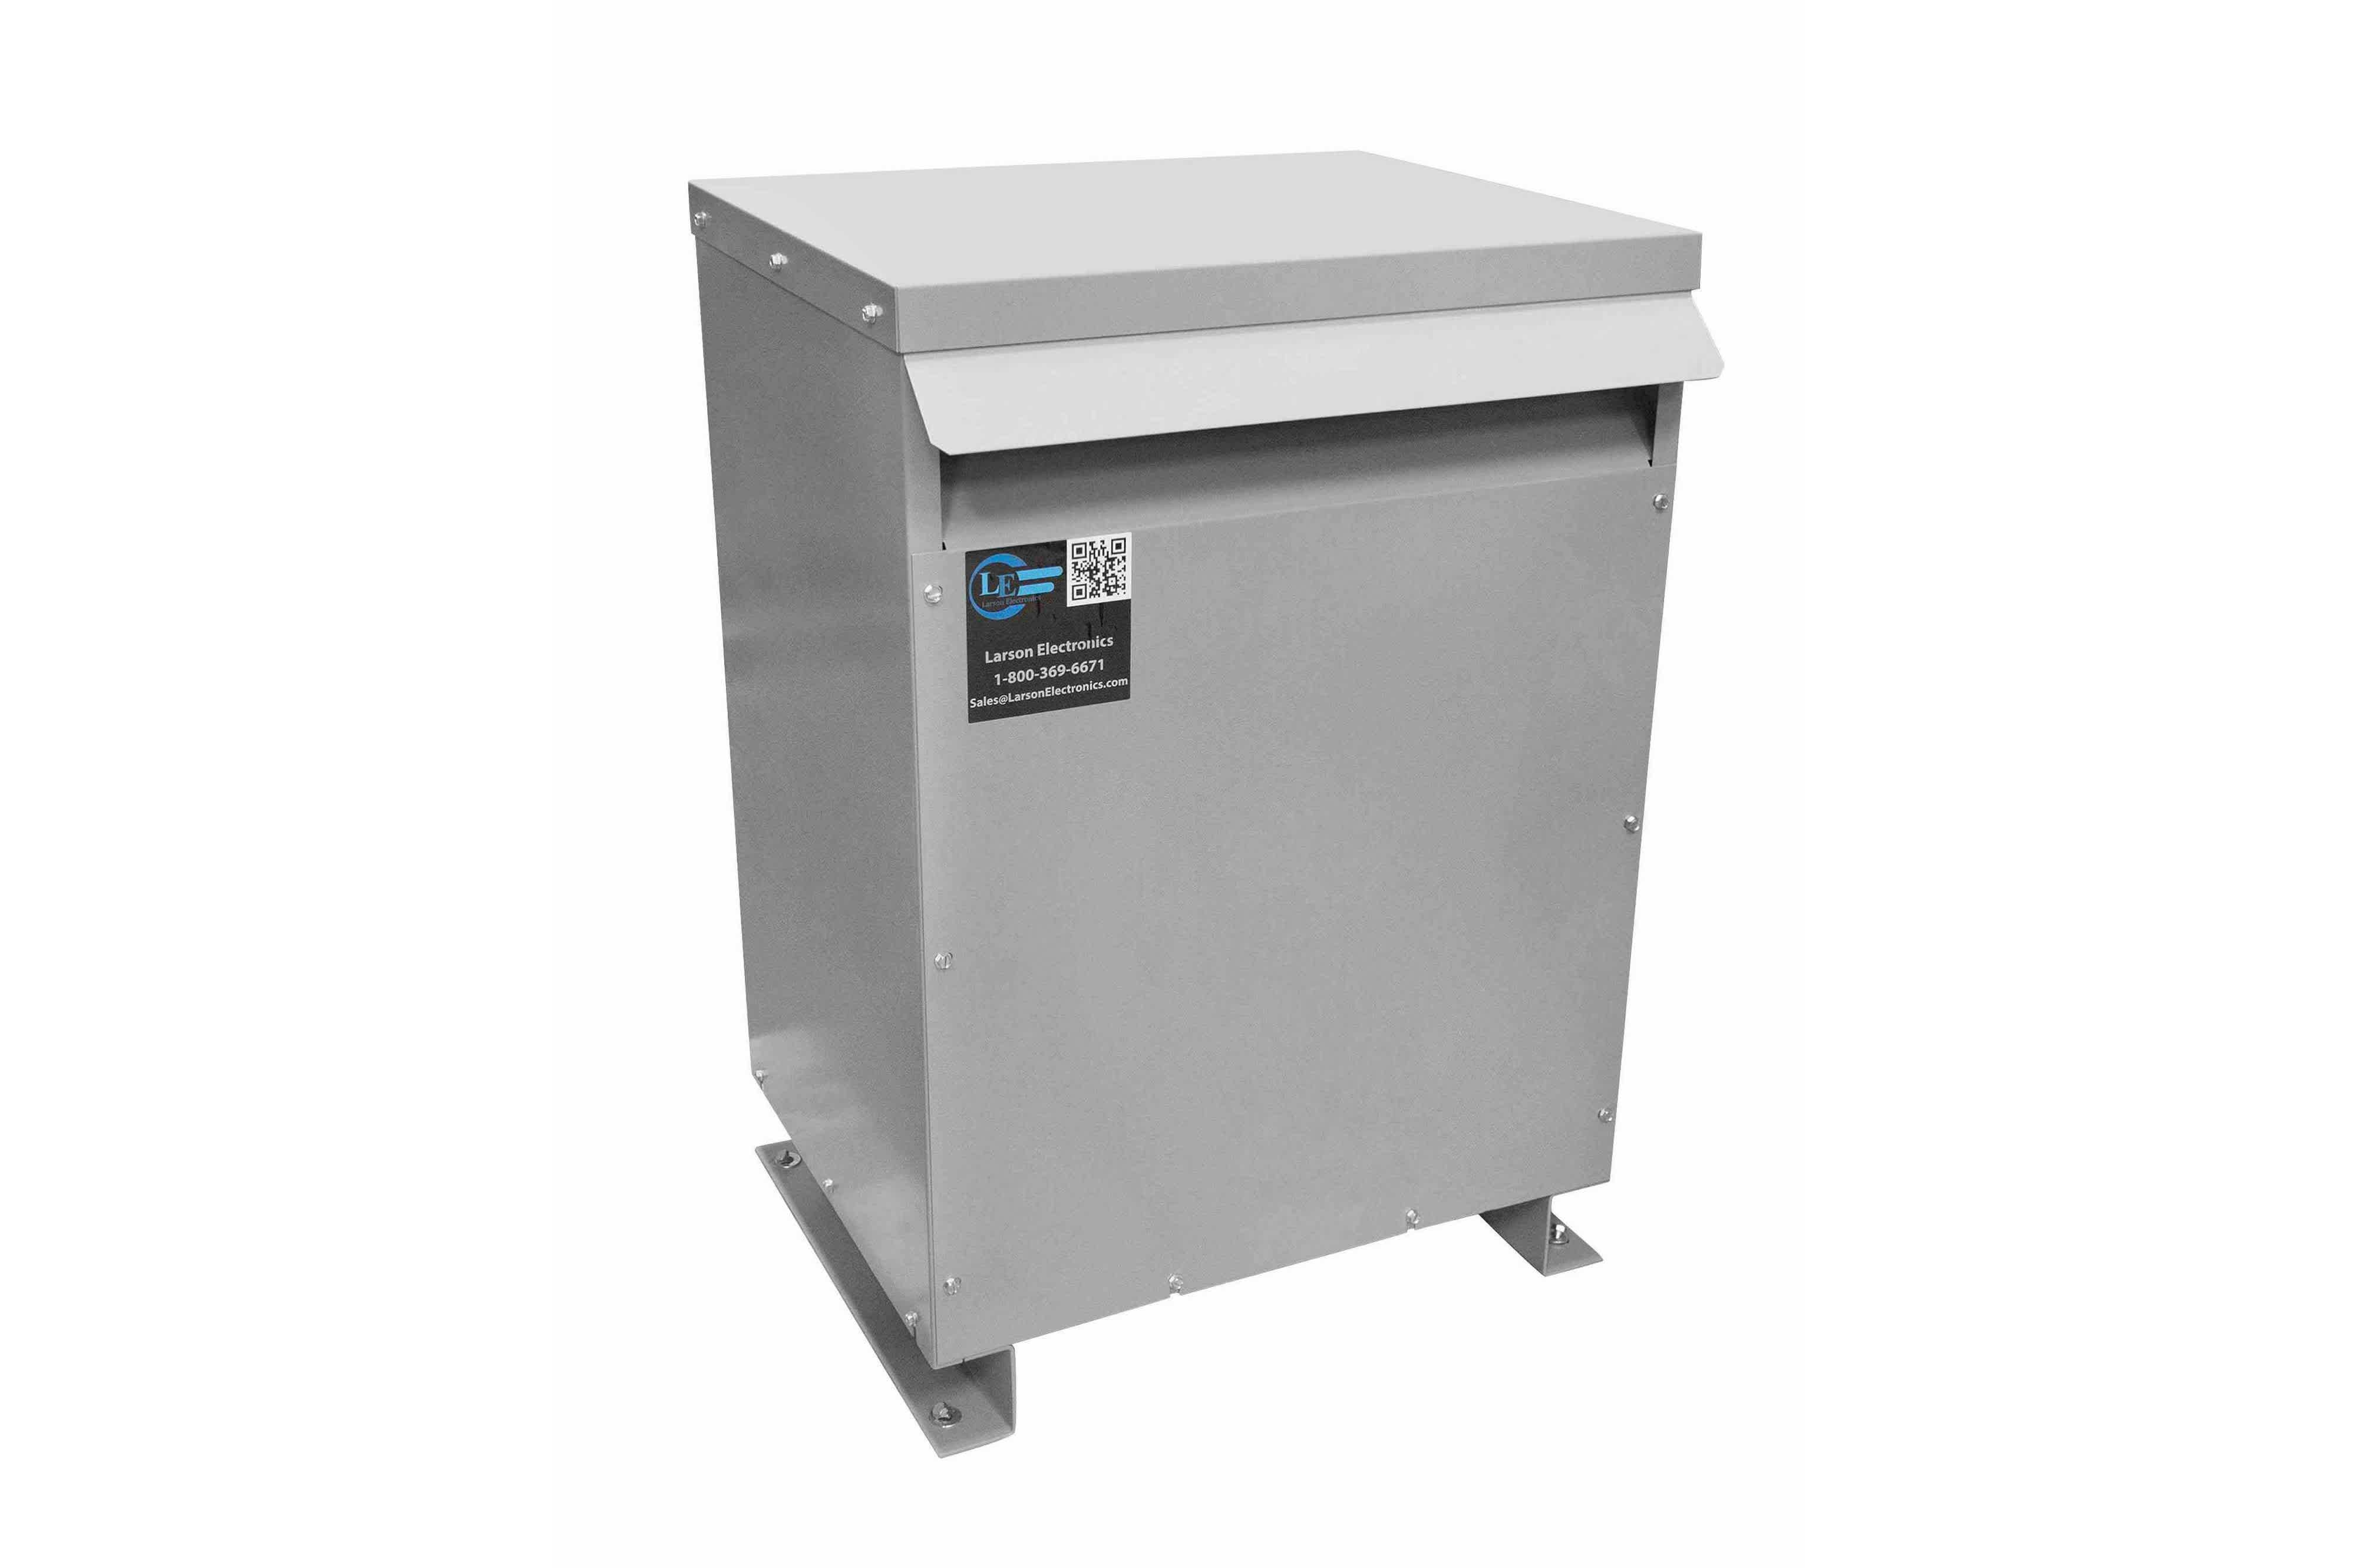 45 kVA 3PH Isolation Transformer, 400V Wye Primary, 240V Delta Secondary, N3R, Ventilated, 60 Hz